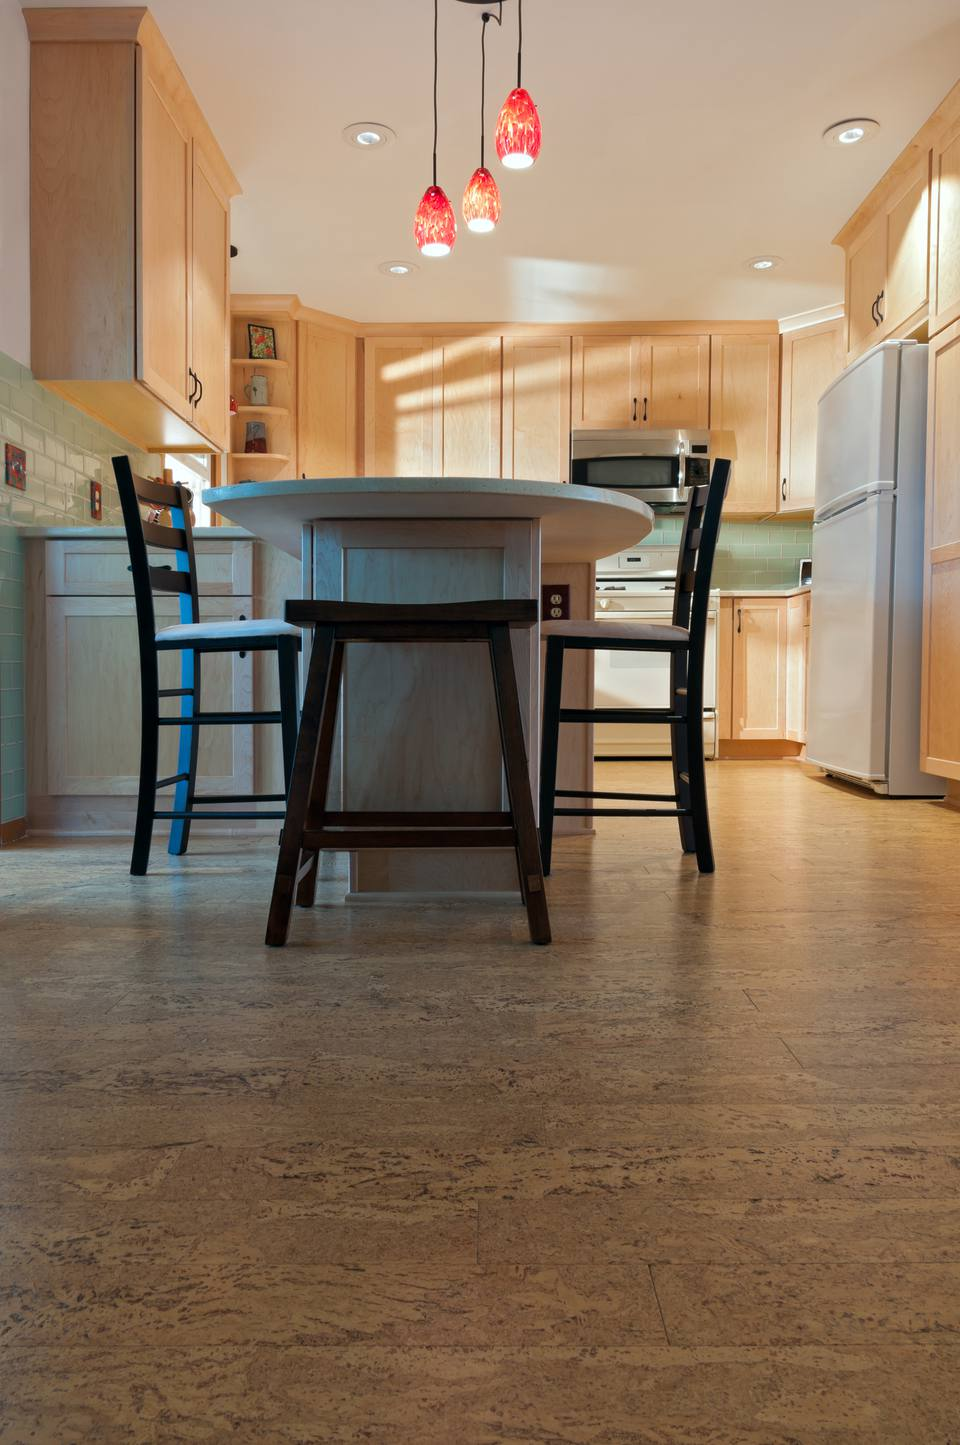 Eat In Kitchen With Light Wood Cabinets And Cork Flooring